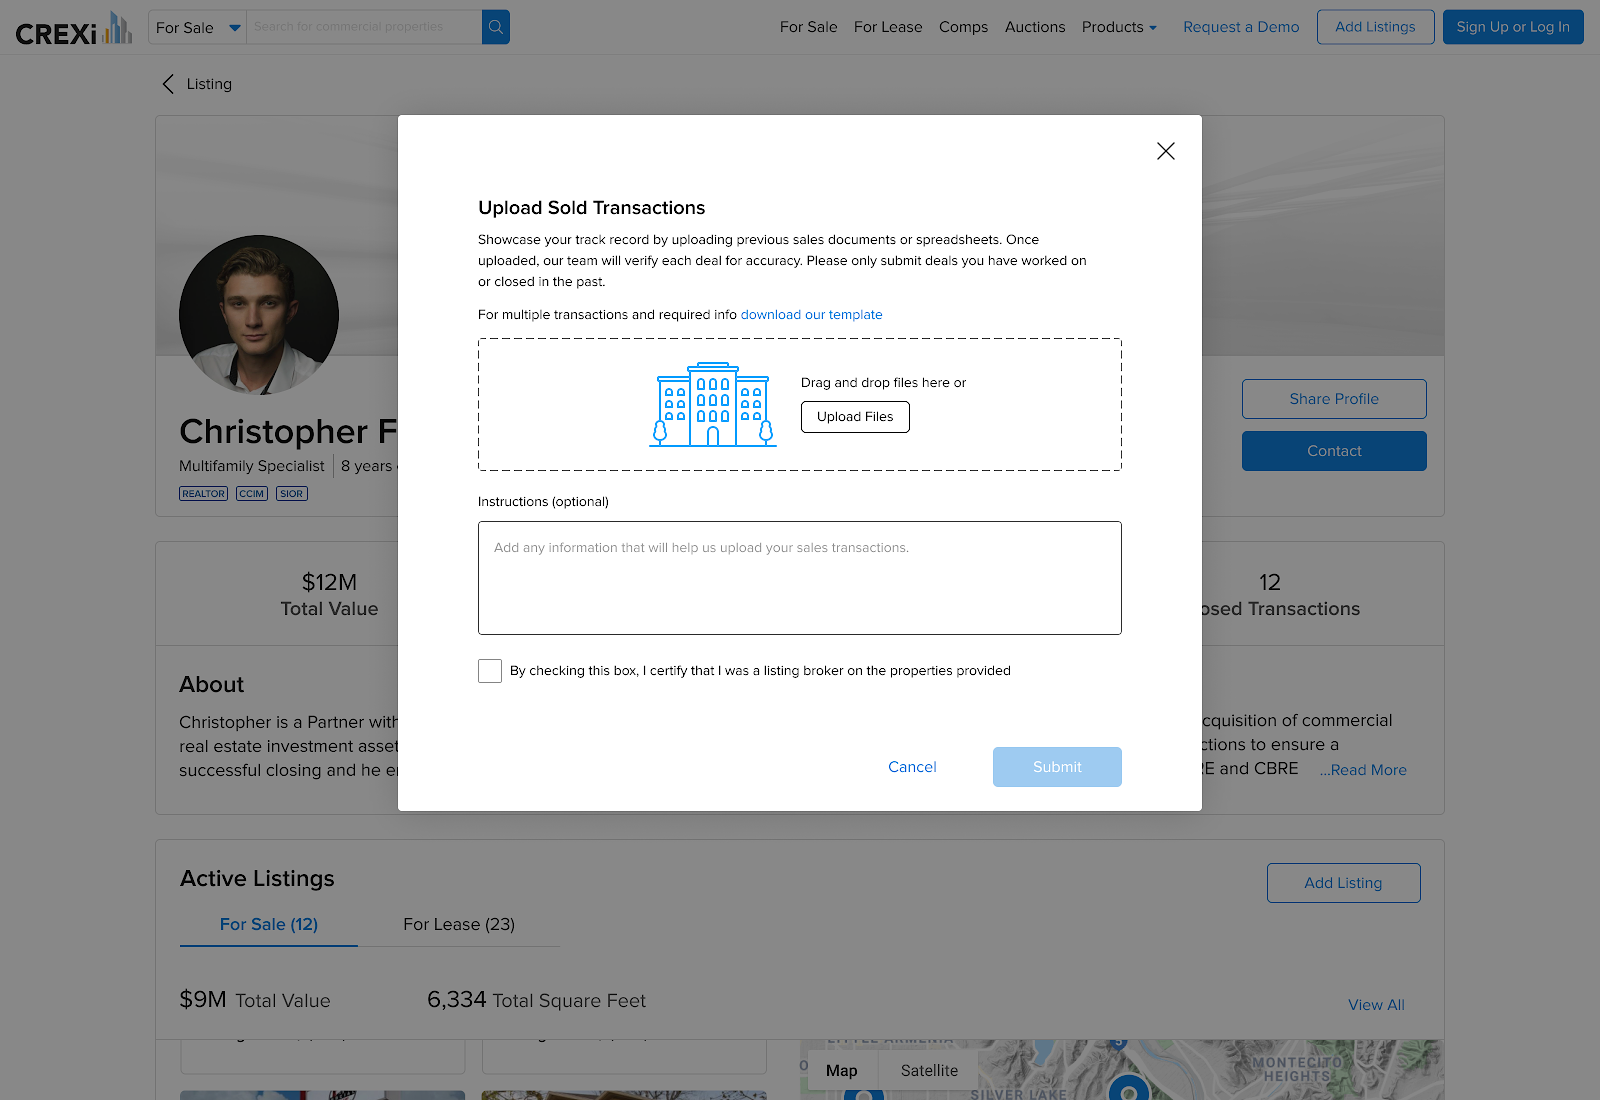 """screenshot of new feature """"upload sold transactions"""" for brokers to highlight previous experience"""